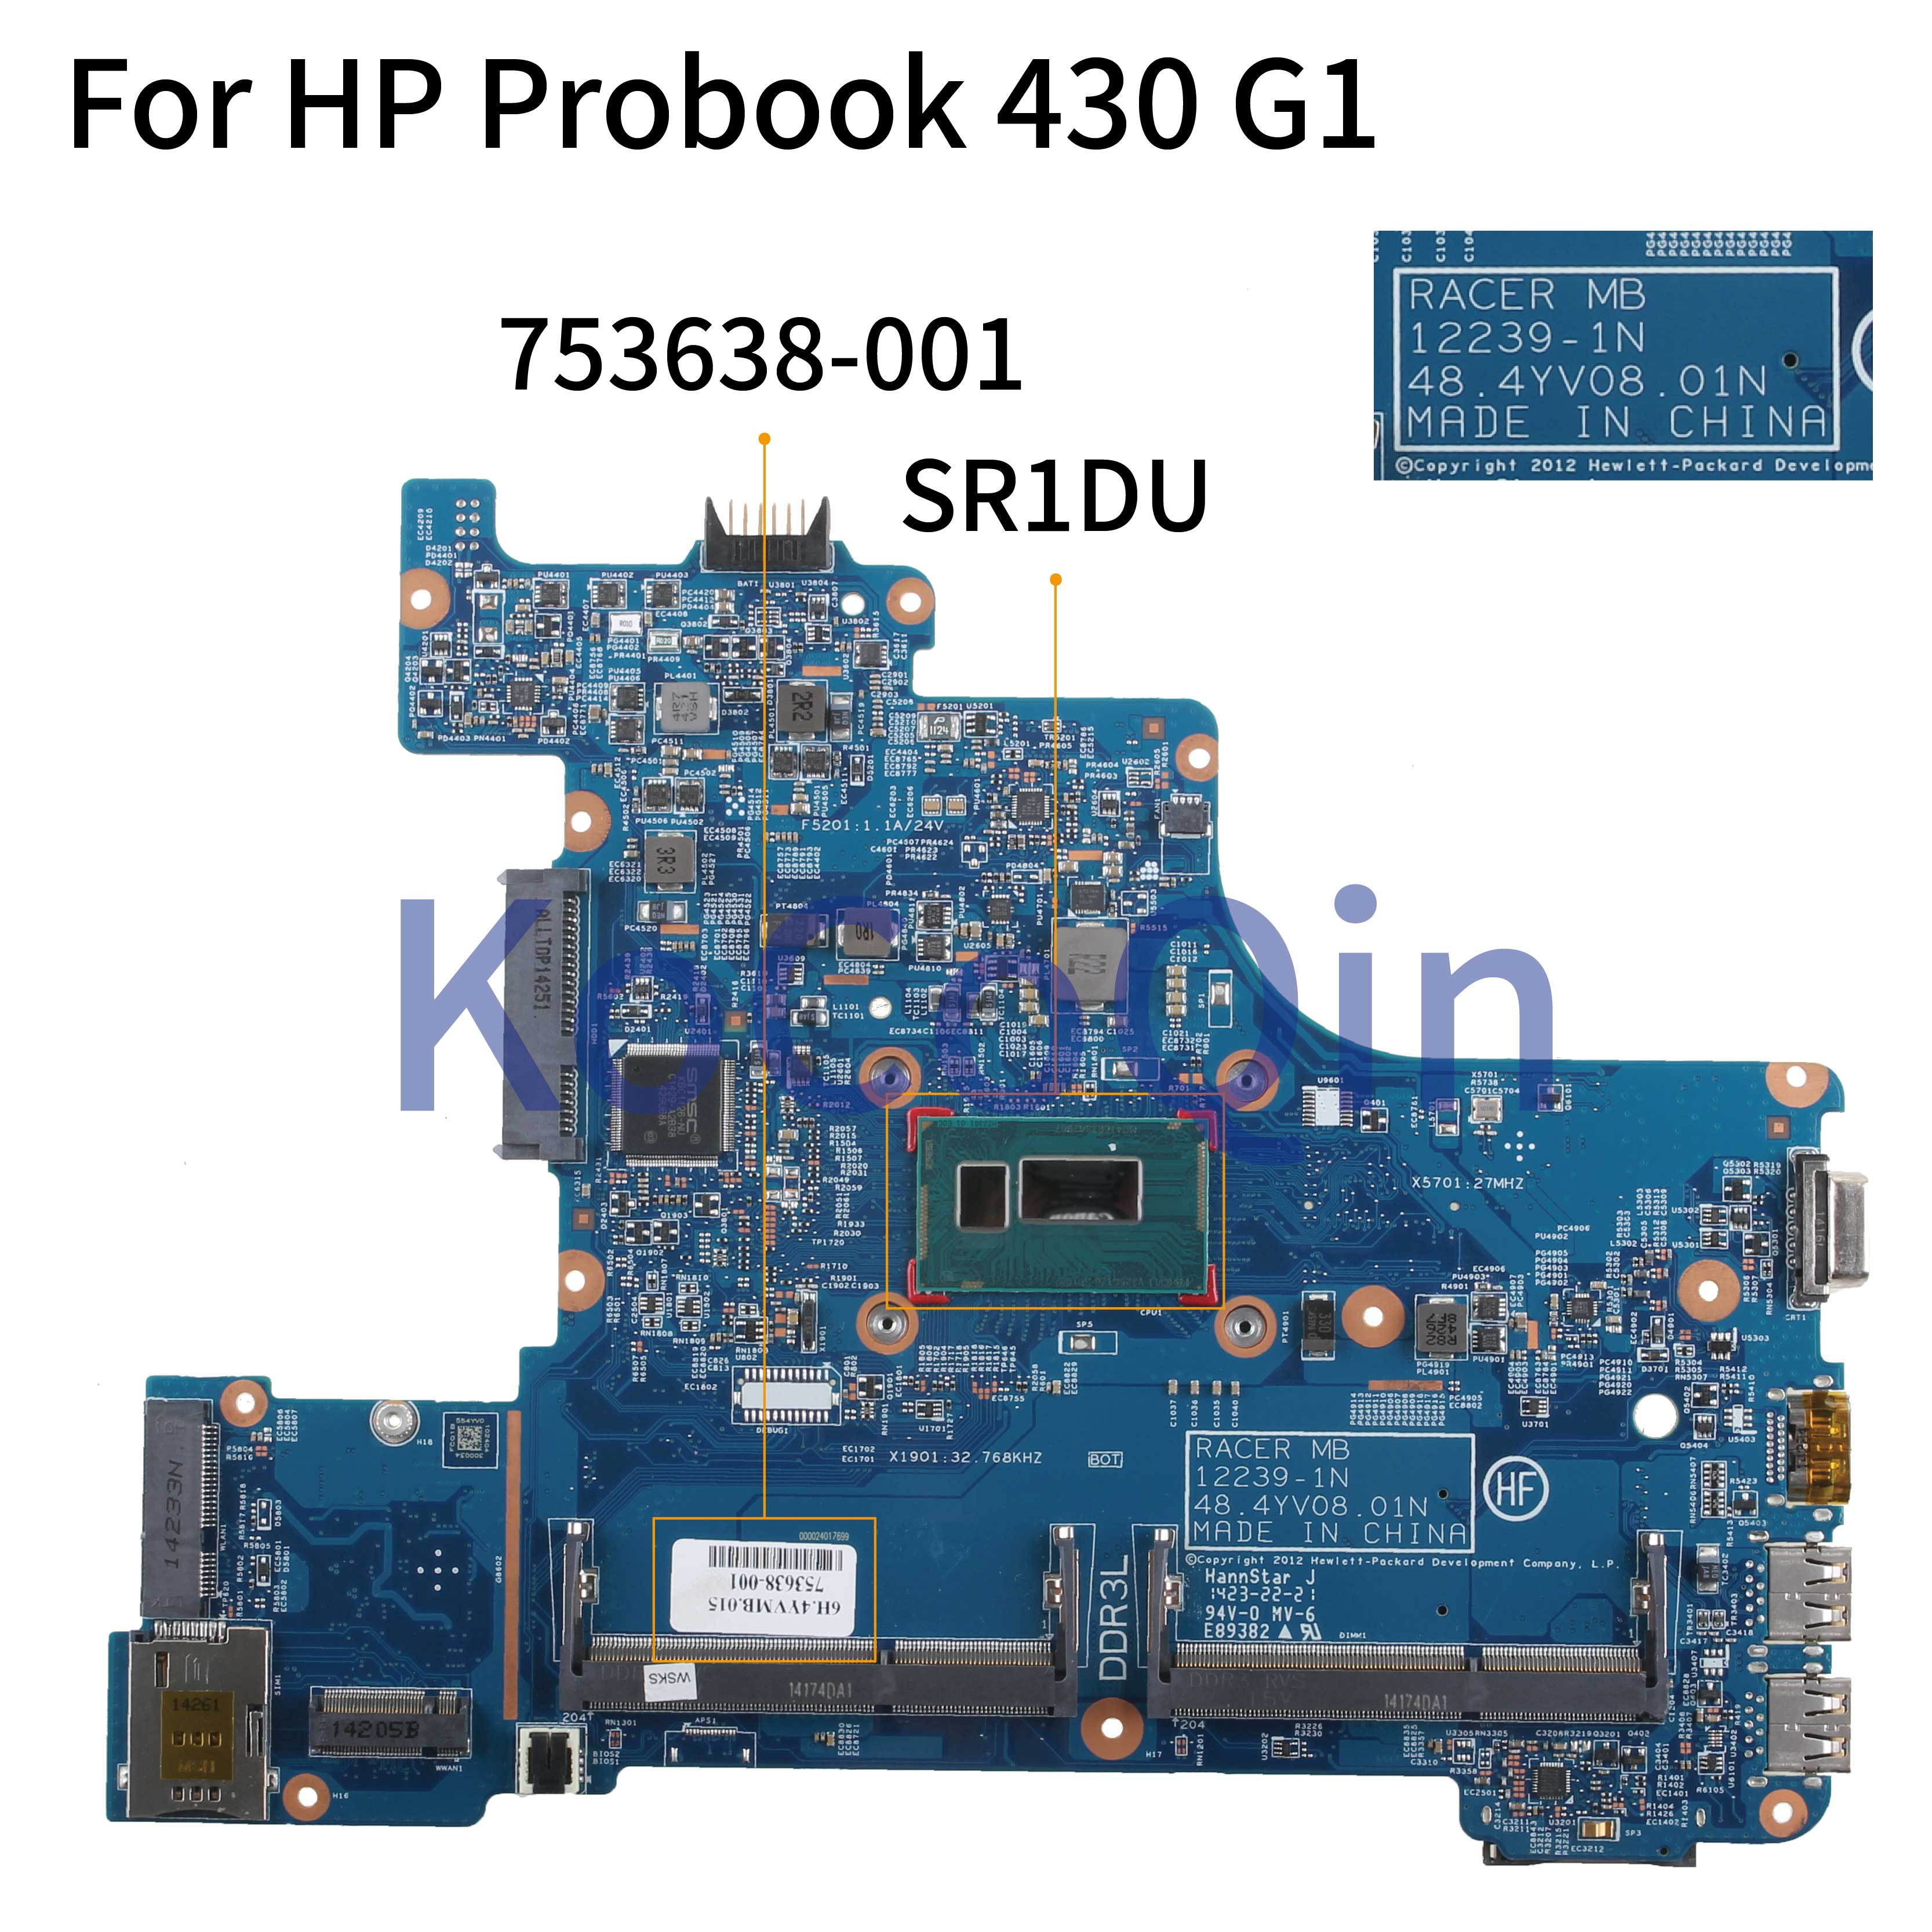 KoCoQin Laptop Motherboard For HP Probook 430 G1 2955U Mainboard 753638-001 753638-501 SR1DU 12239-1N 48.4YV08.01N